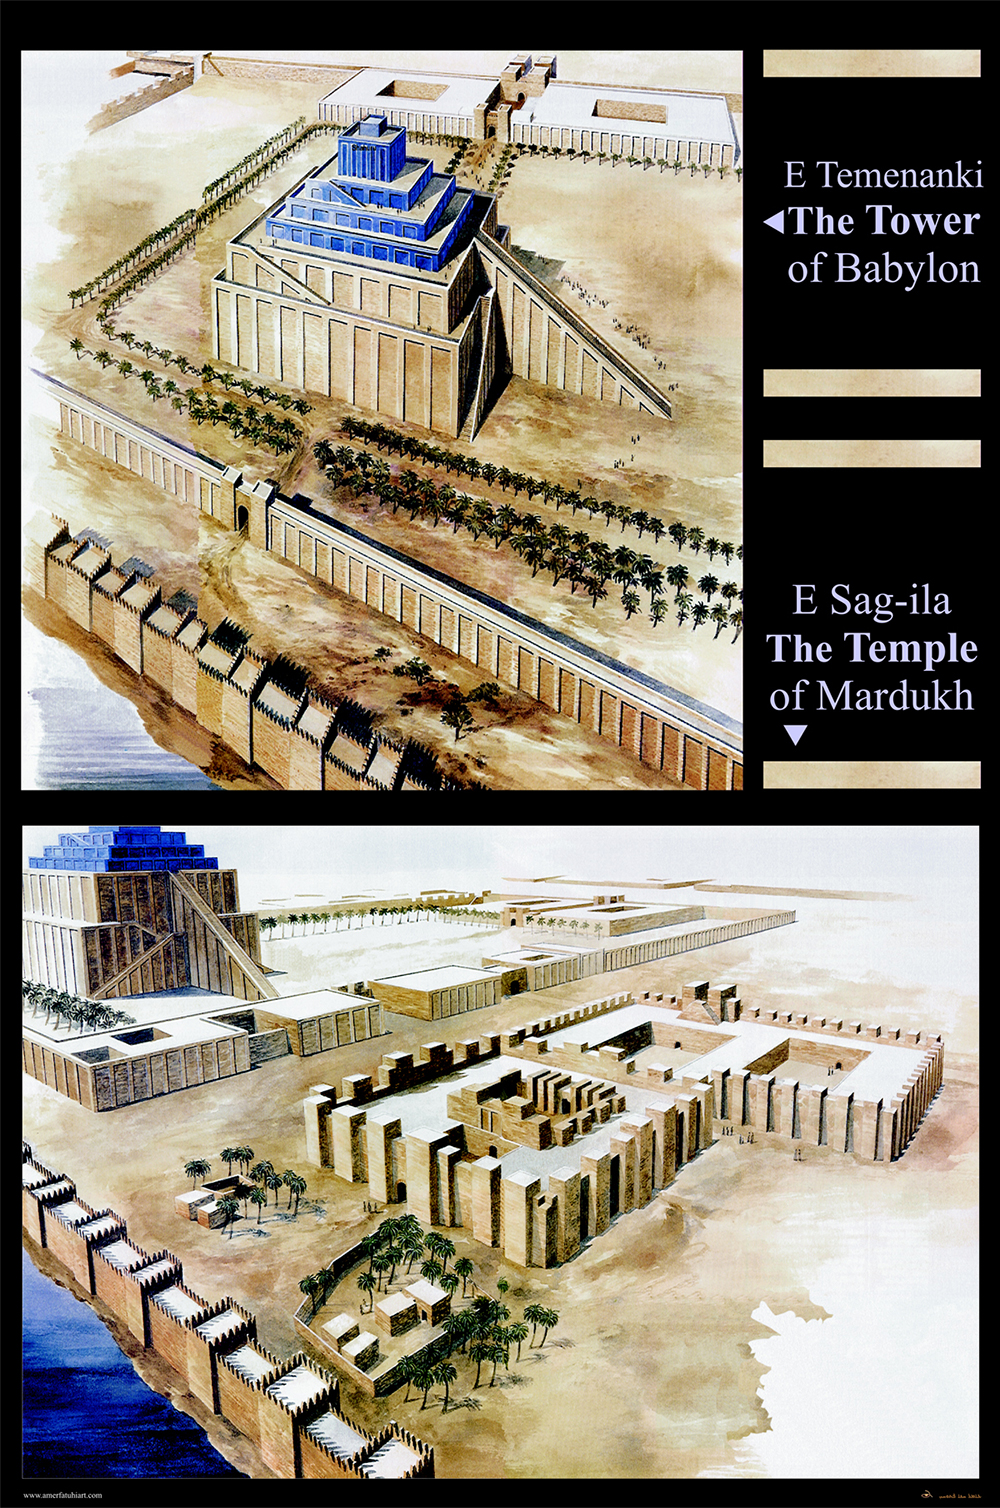 e-temen-anki-tower-of-babylon